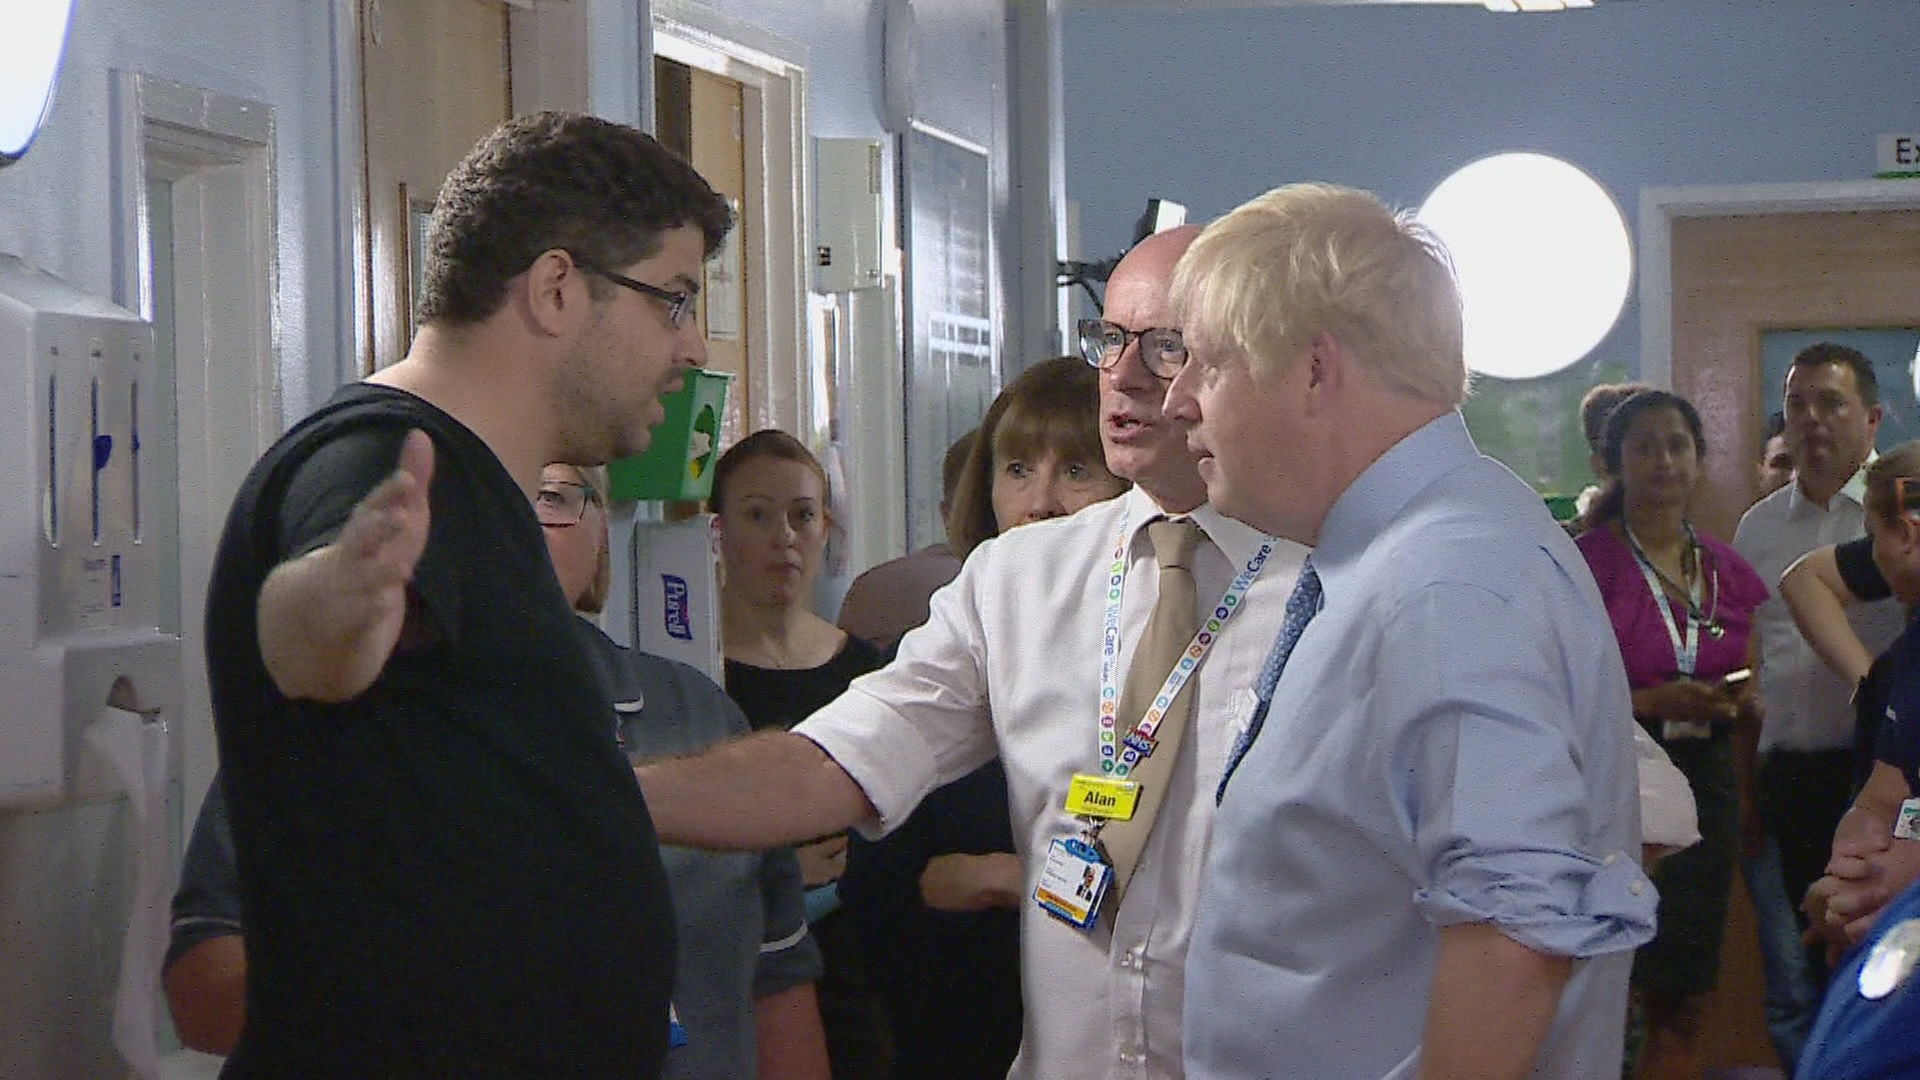 Just How Bad Was Boris Johnson's Hospital Photo-Op?